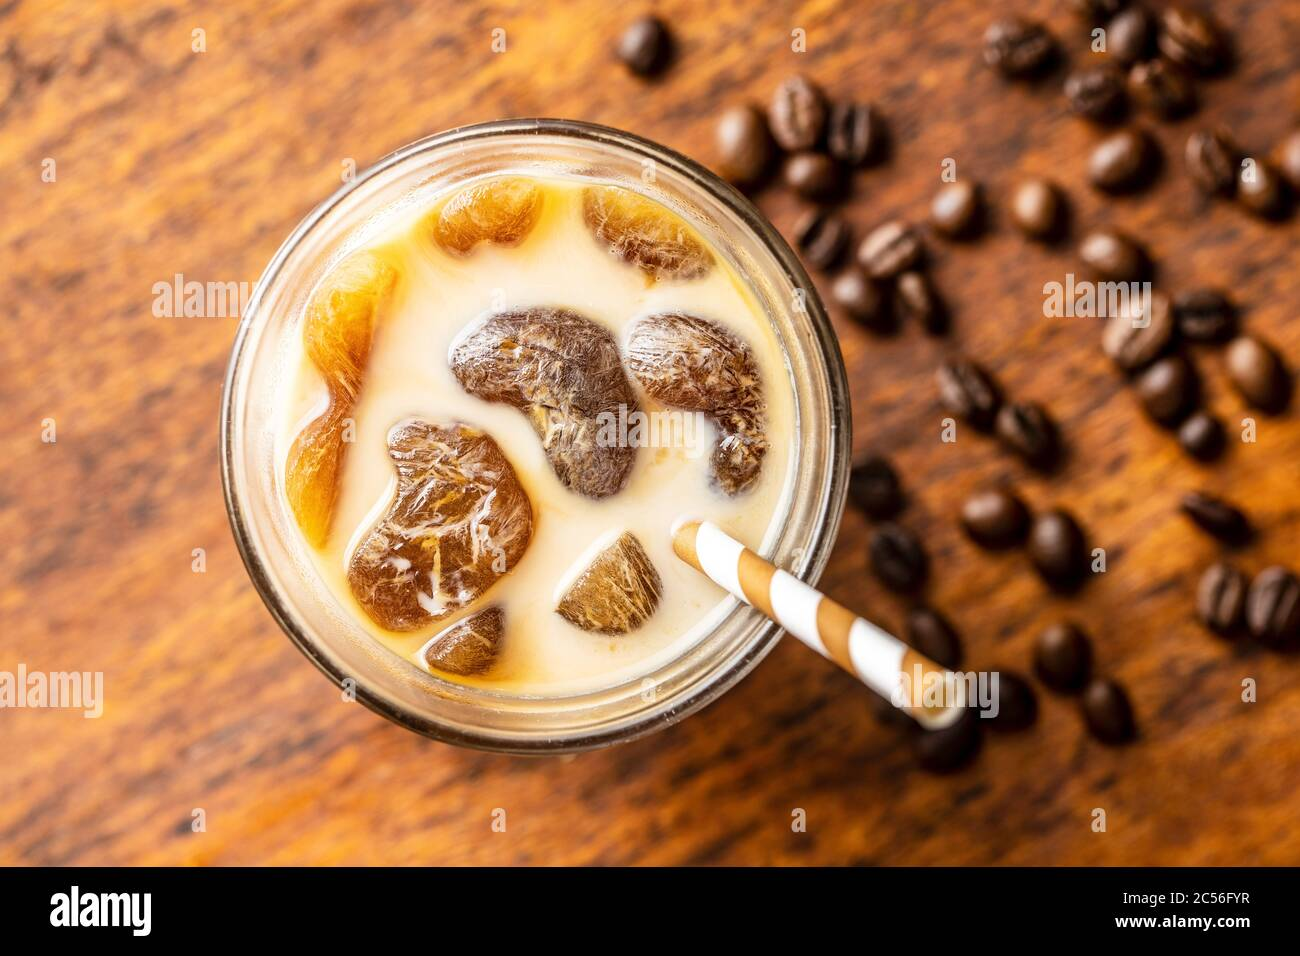 Iced Coffee With Coffee Ice Cubes On Wooden Table Top View Stock Photo Alamy